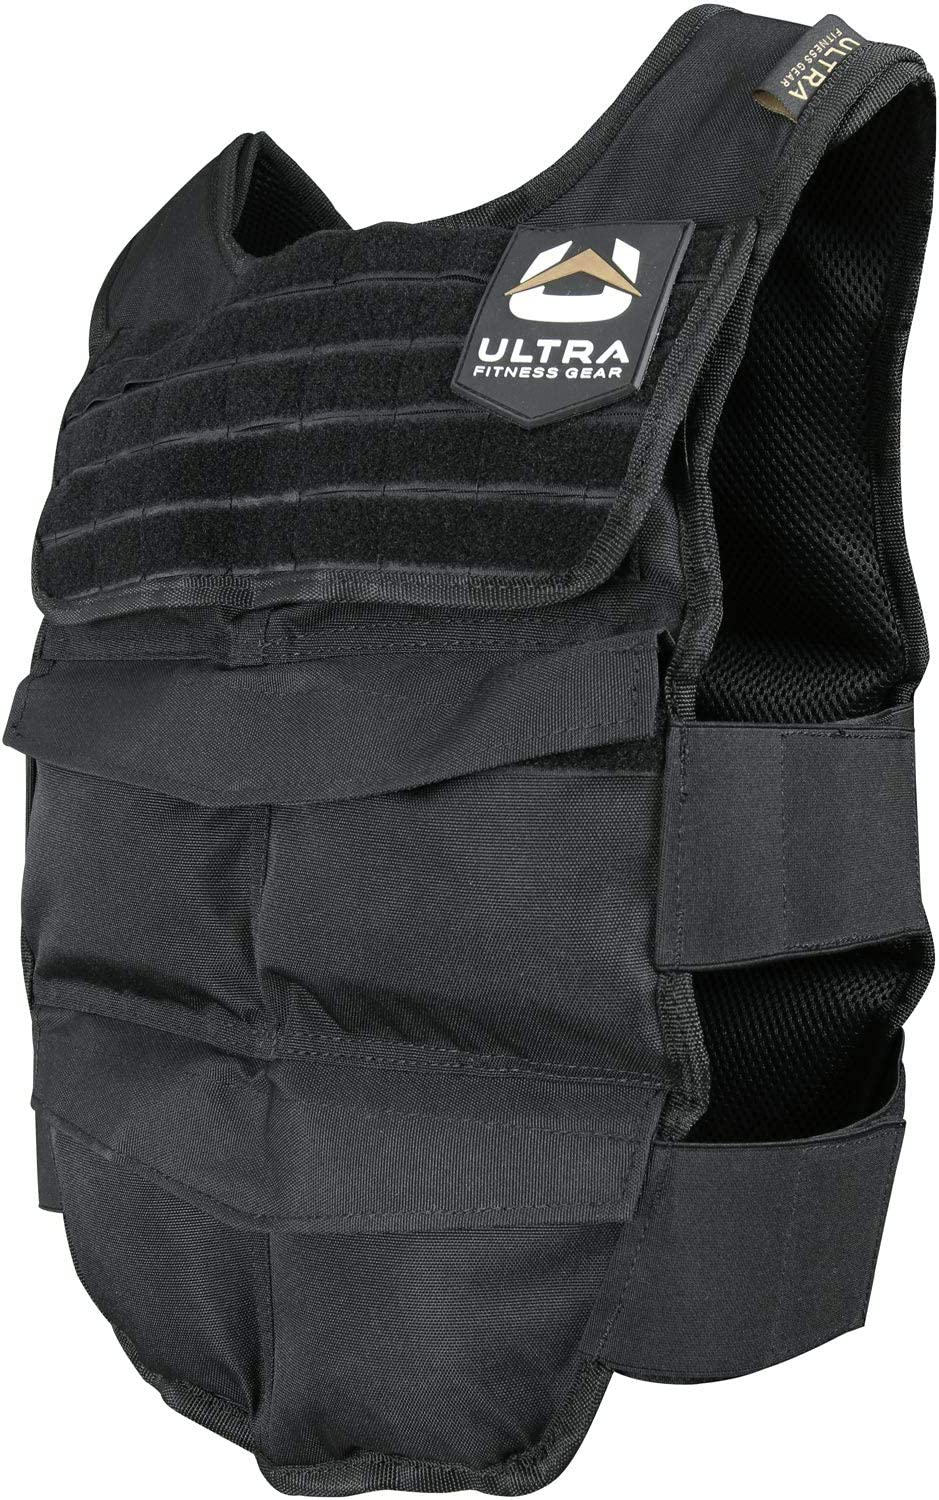 Ultra Fitness Gear Breathable Exercise Weighted Vest, 12 to 48 lbs Capacity, with Full Molle Webbing Chest Panel and Secure Straps, Weighted Workout Vest for Men and Women, Black